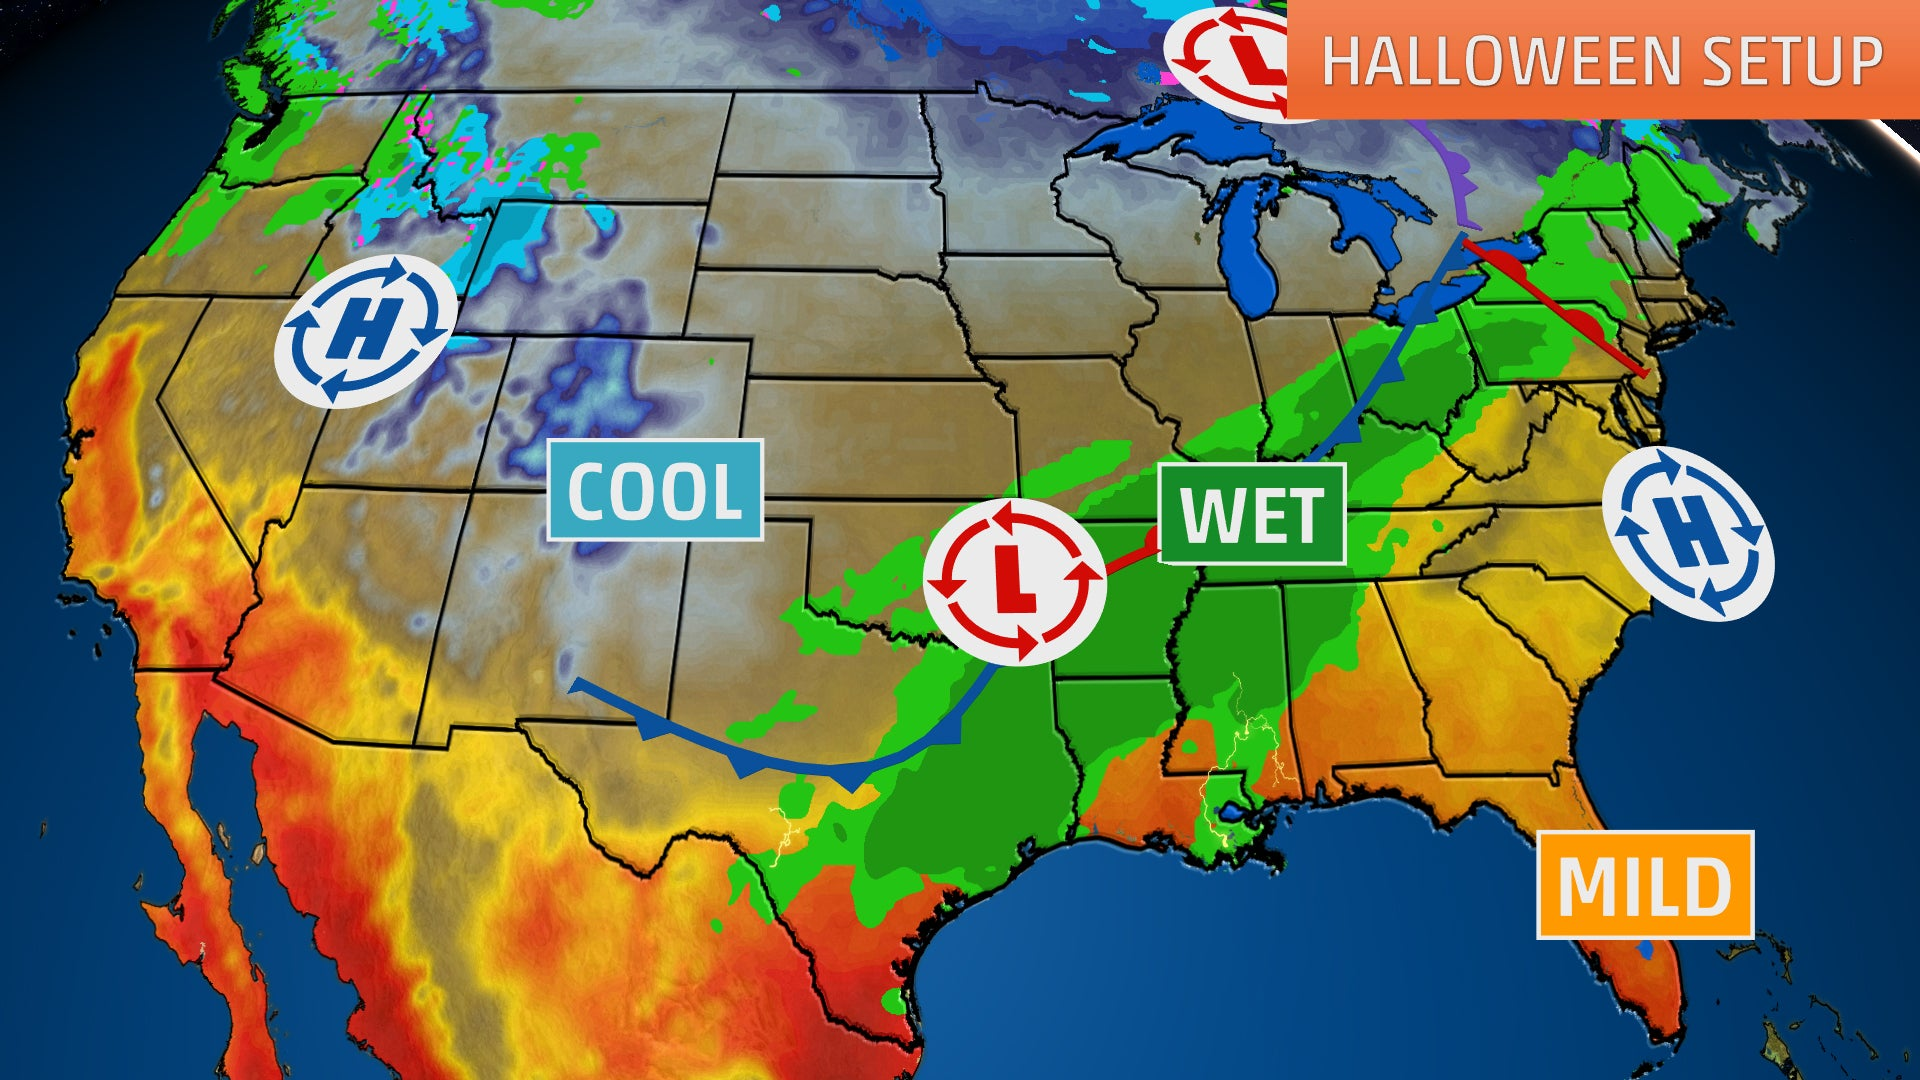 Halloween Weather Forecast: Wet Conditions From Texas to Ohio